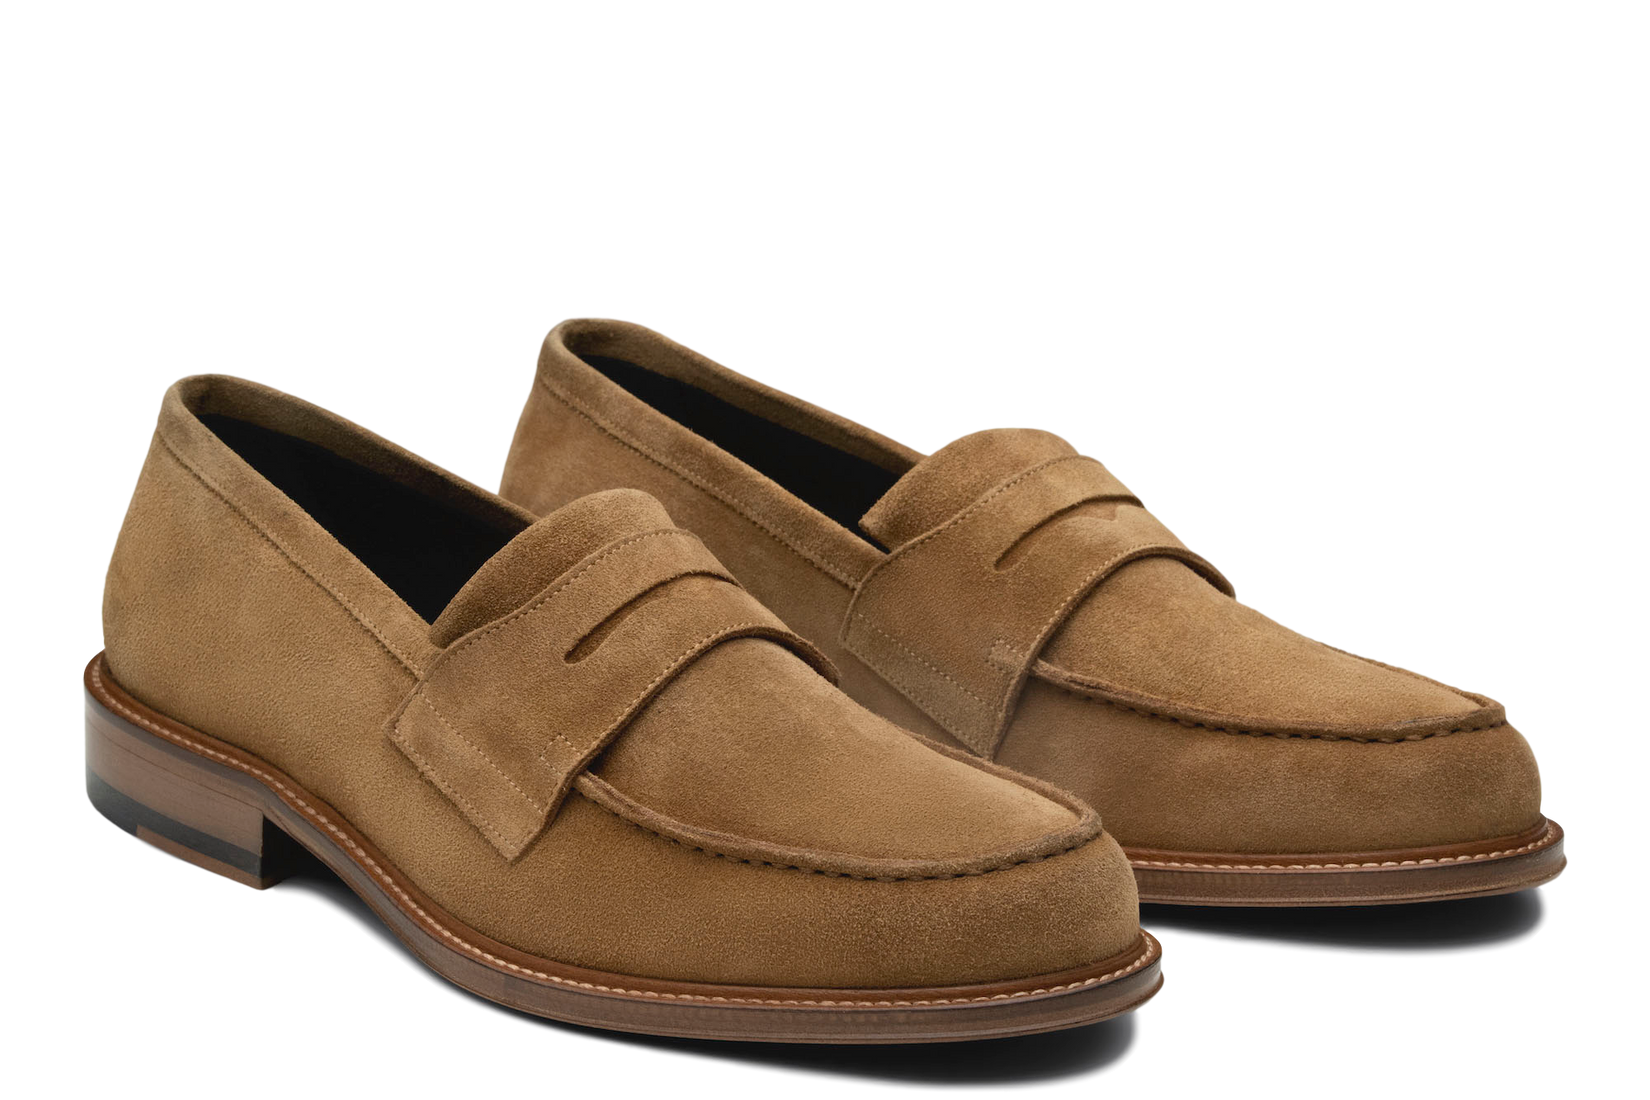 Monday Penny Loafer in Tan (FINAL SALE)